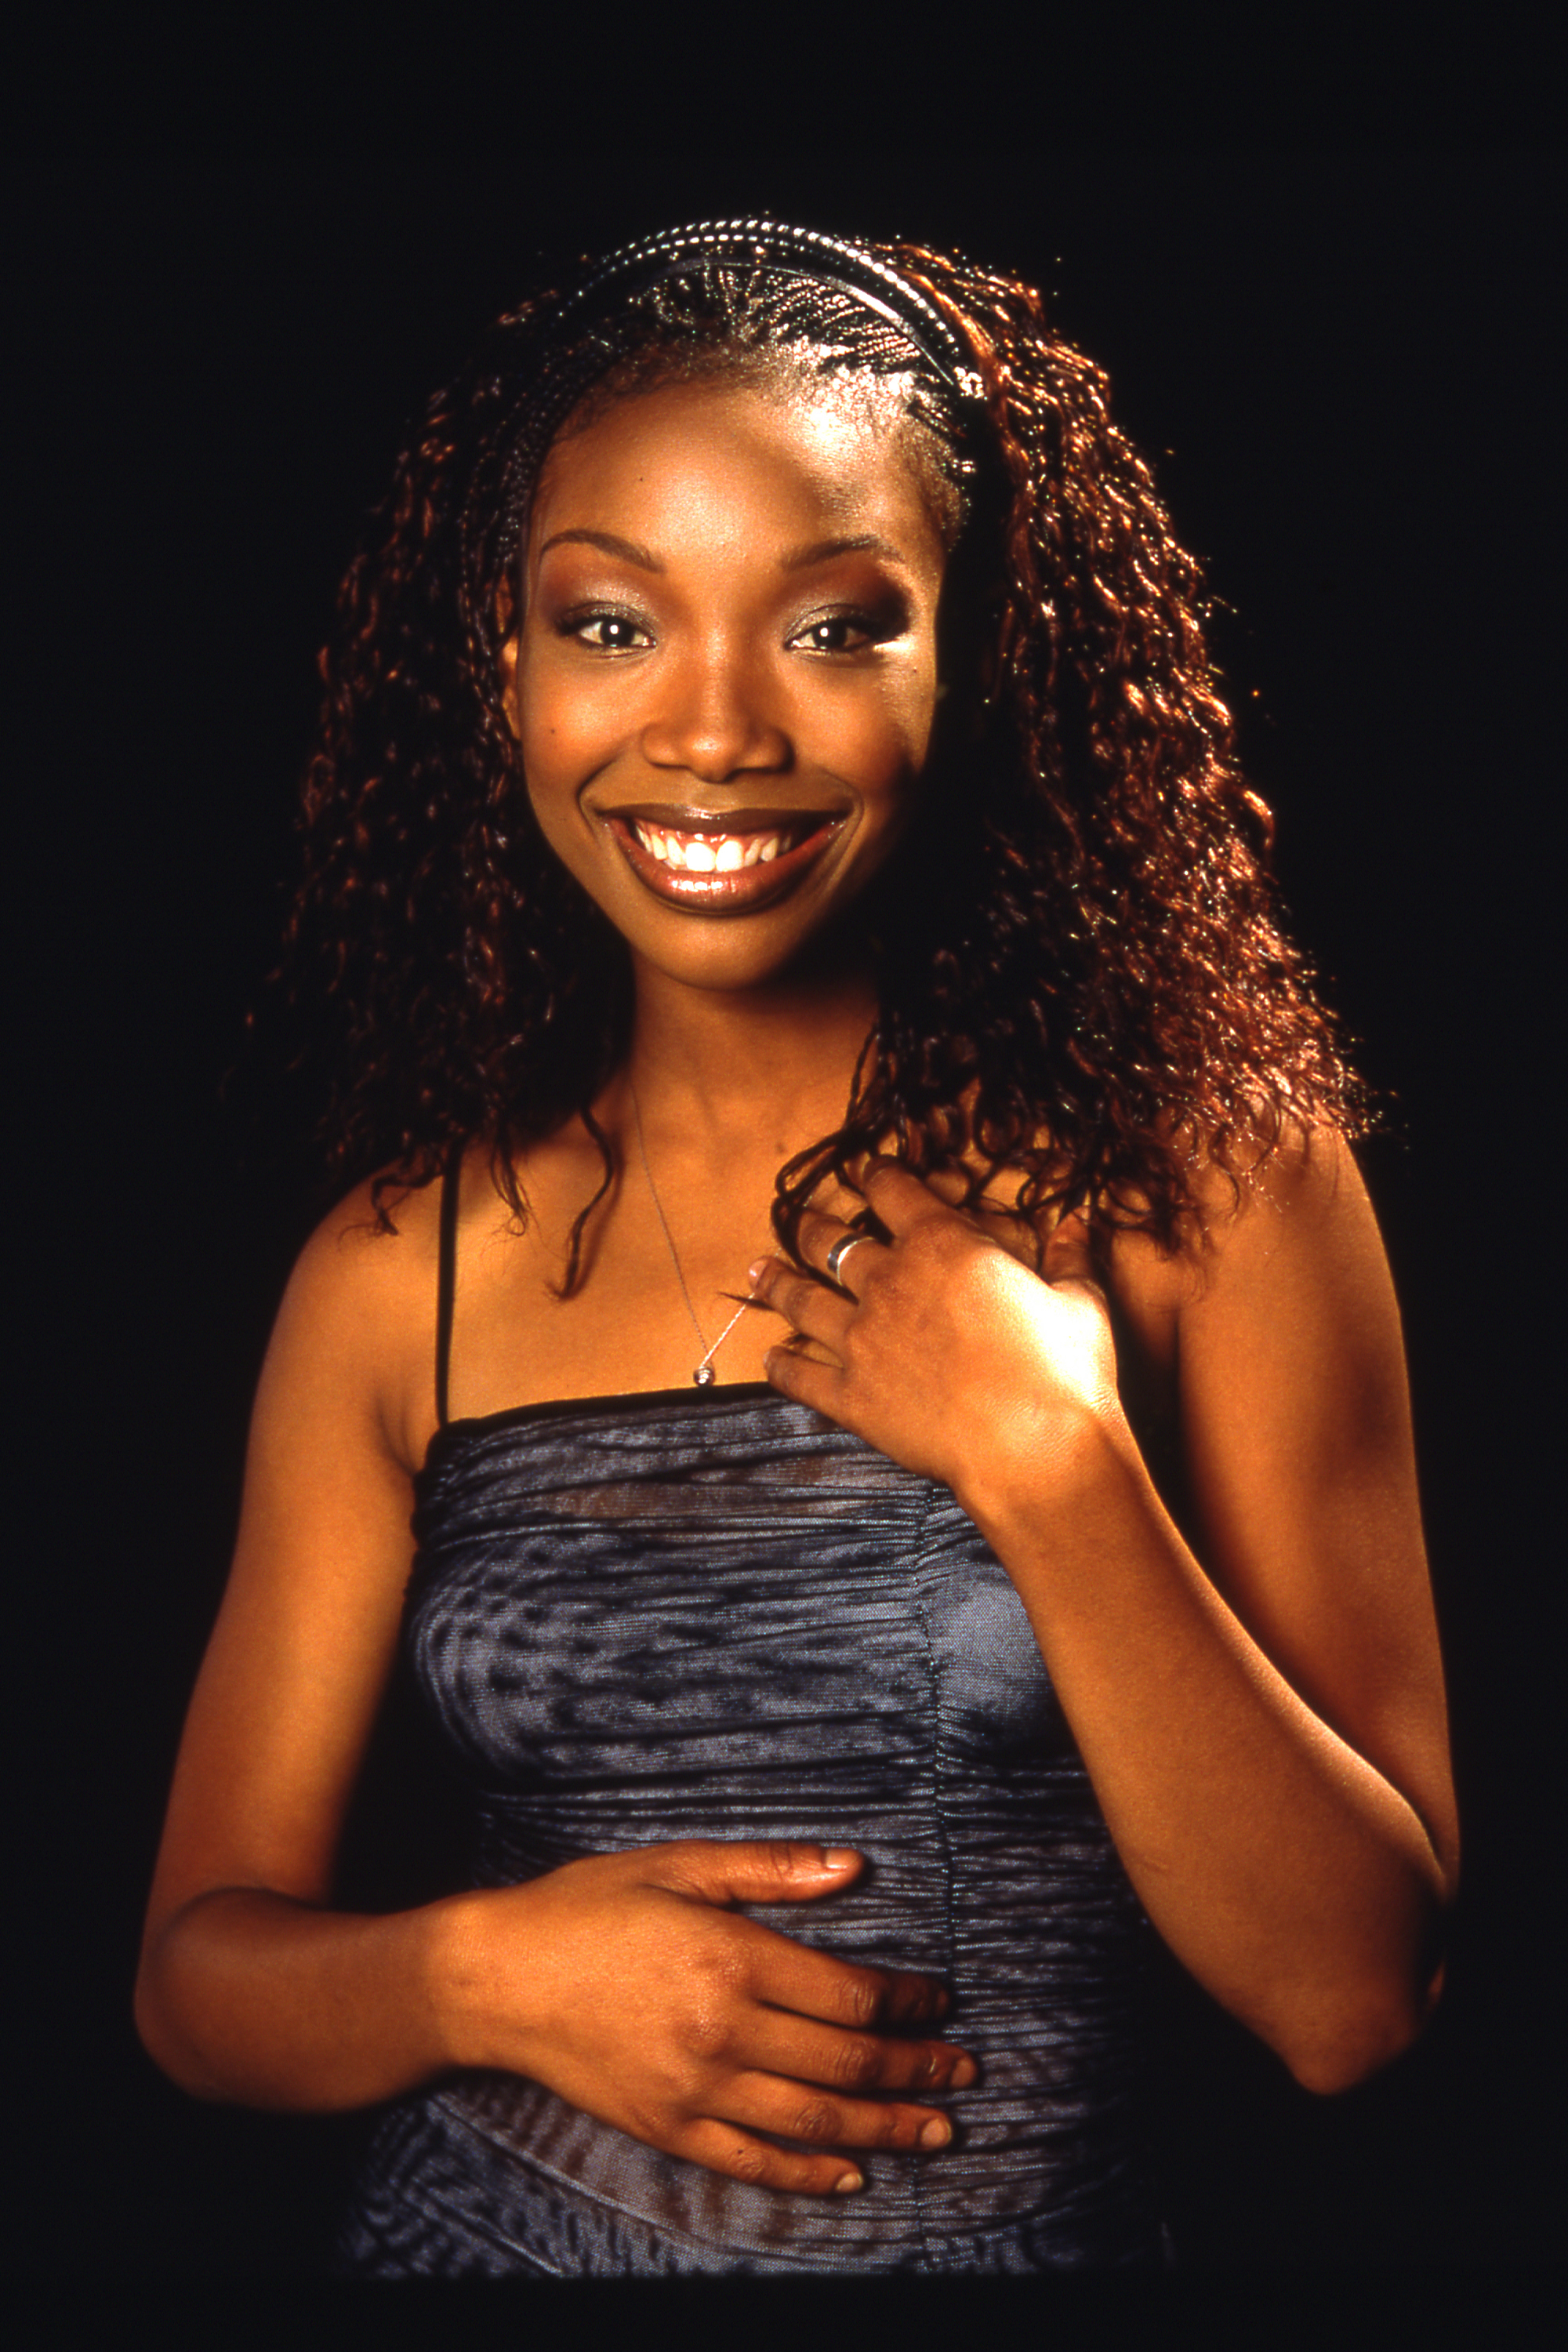 American Singer And Actress Brandy Norwood